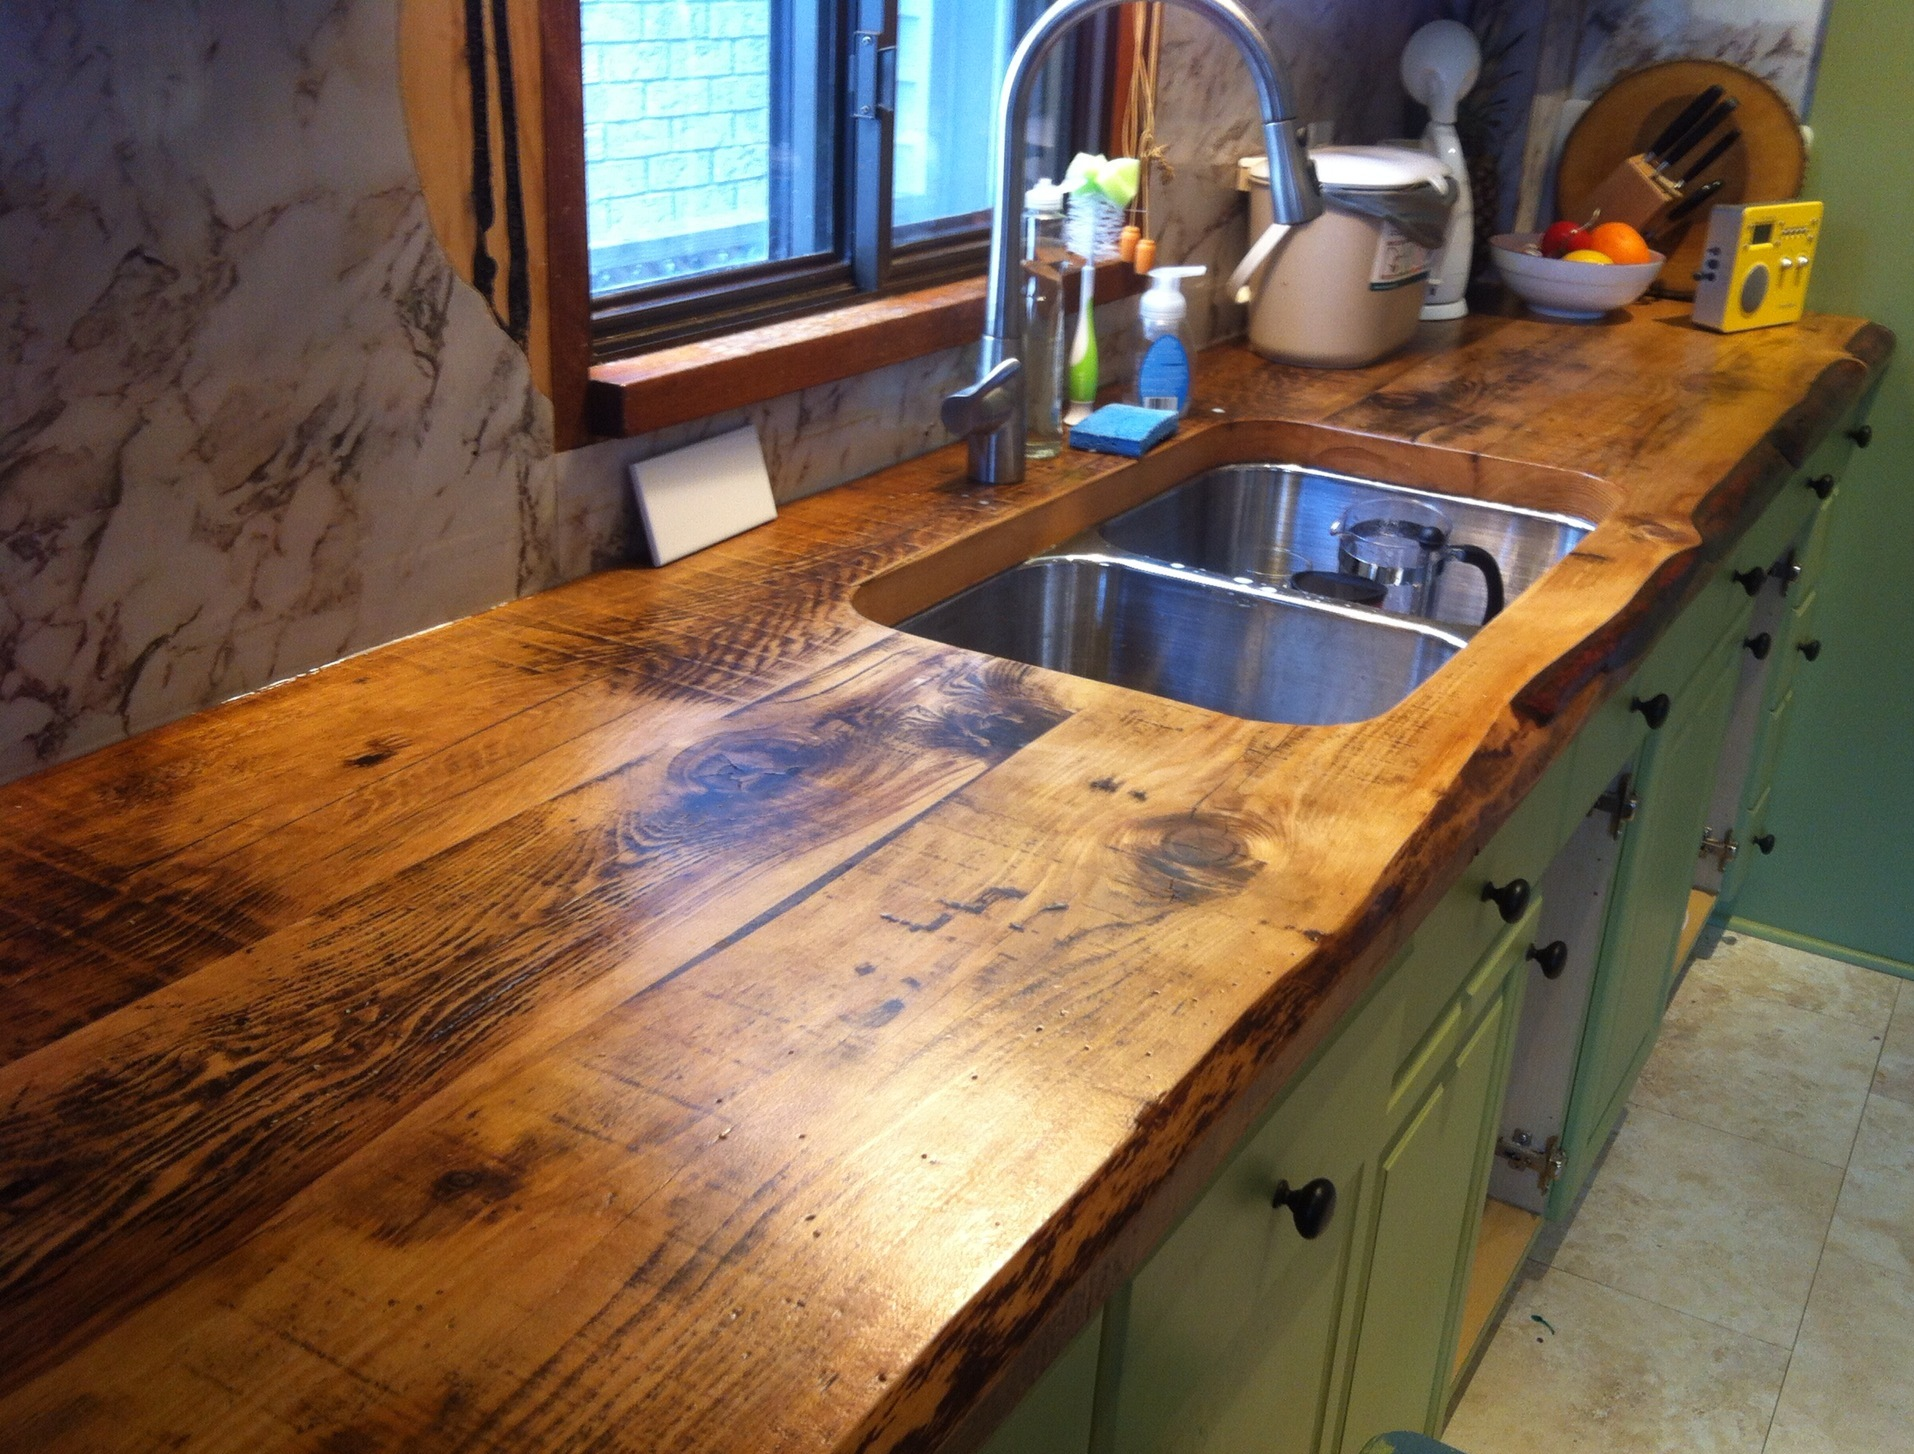 How To Waterproof Wood Countertop Top 10 Countertops Prices Pros Cons Kitchen Countertops